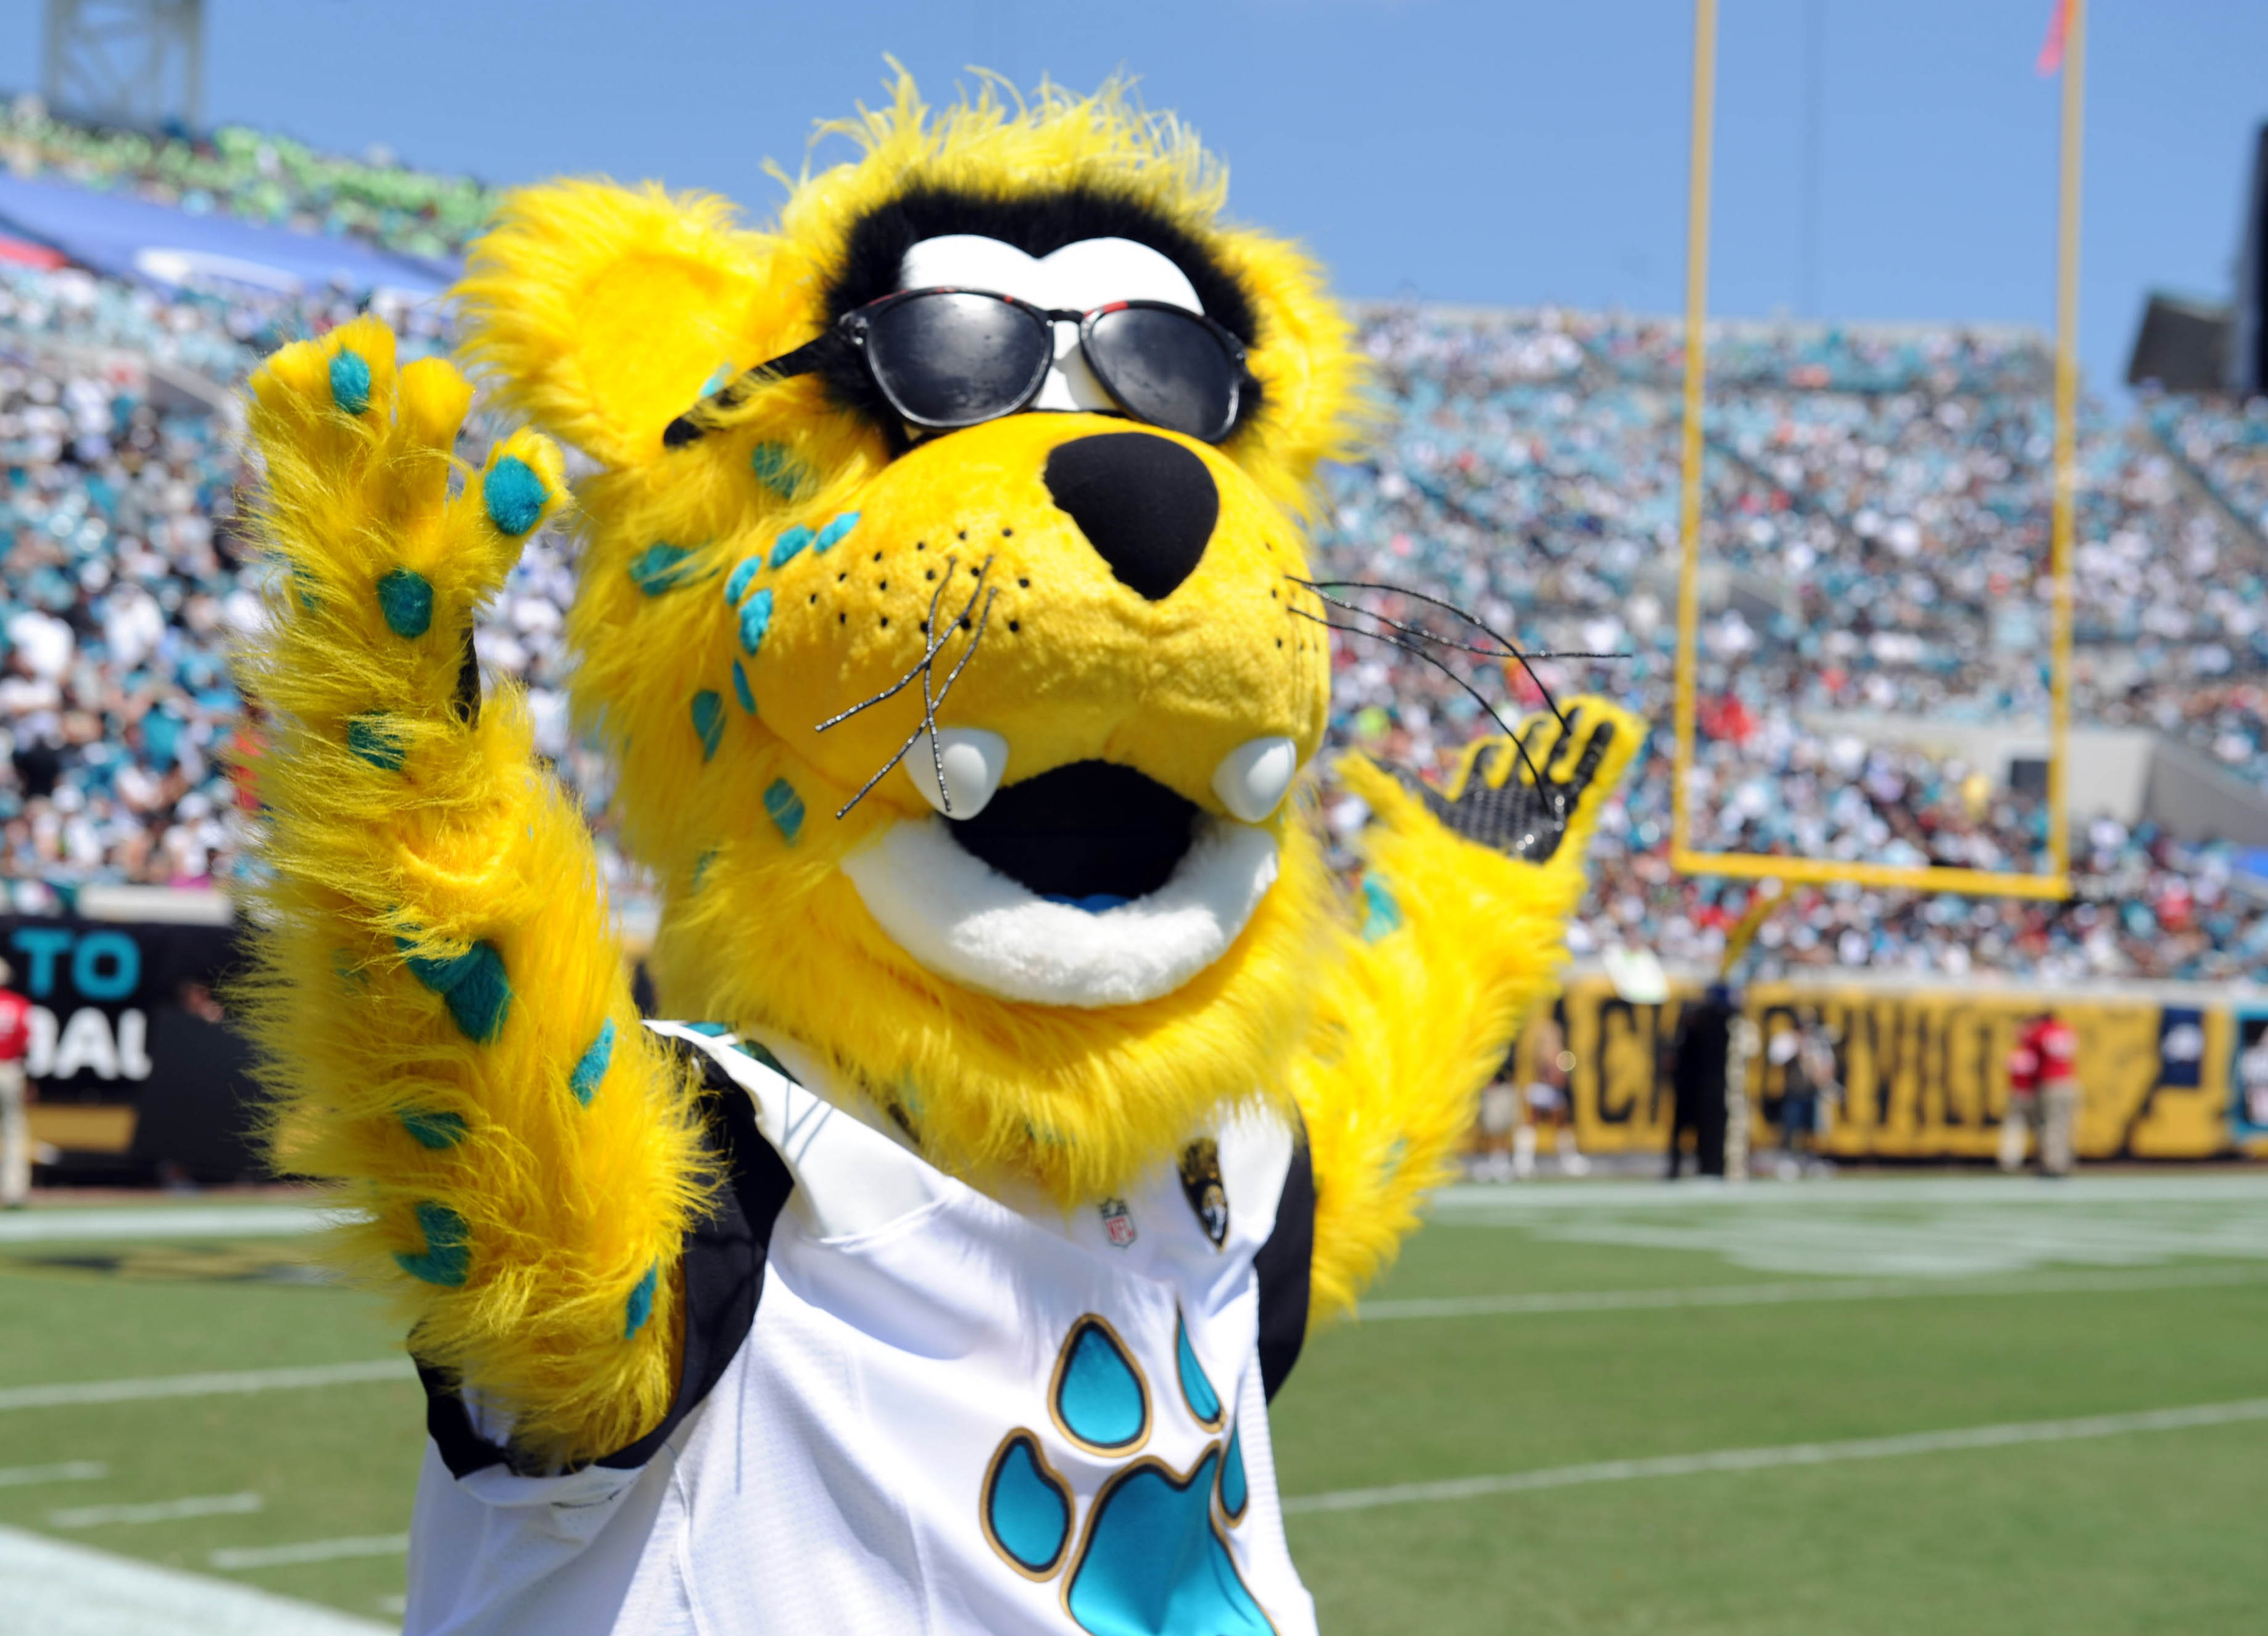 Jags mascot Jackson DeVille hasn't had many reasons to throw up the TD signal this season. (USA TODAY Sports)